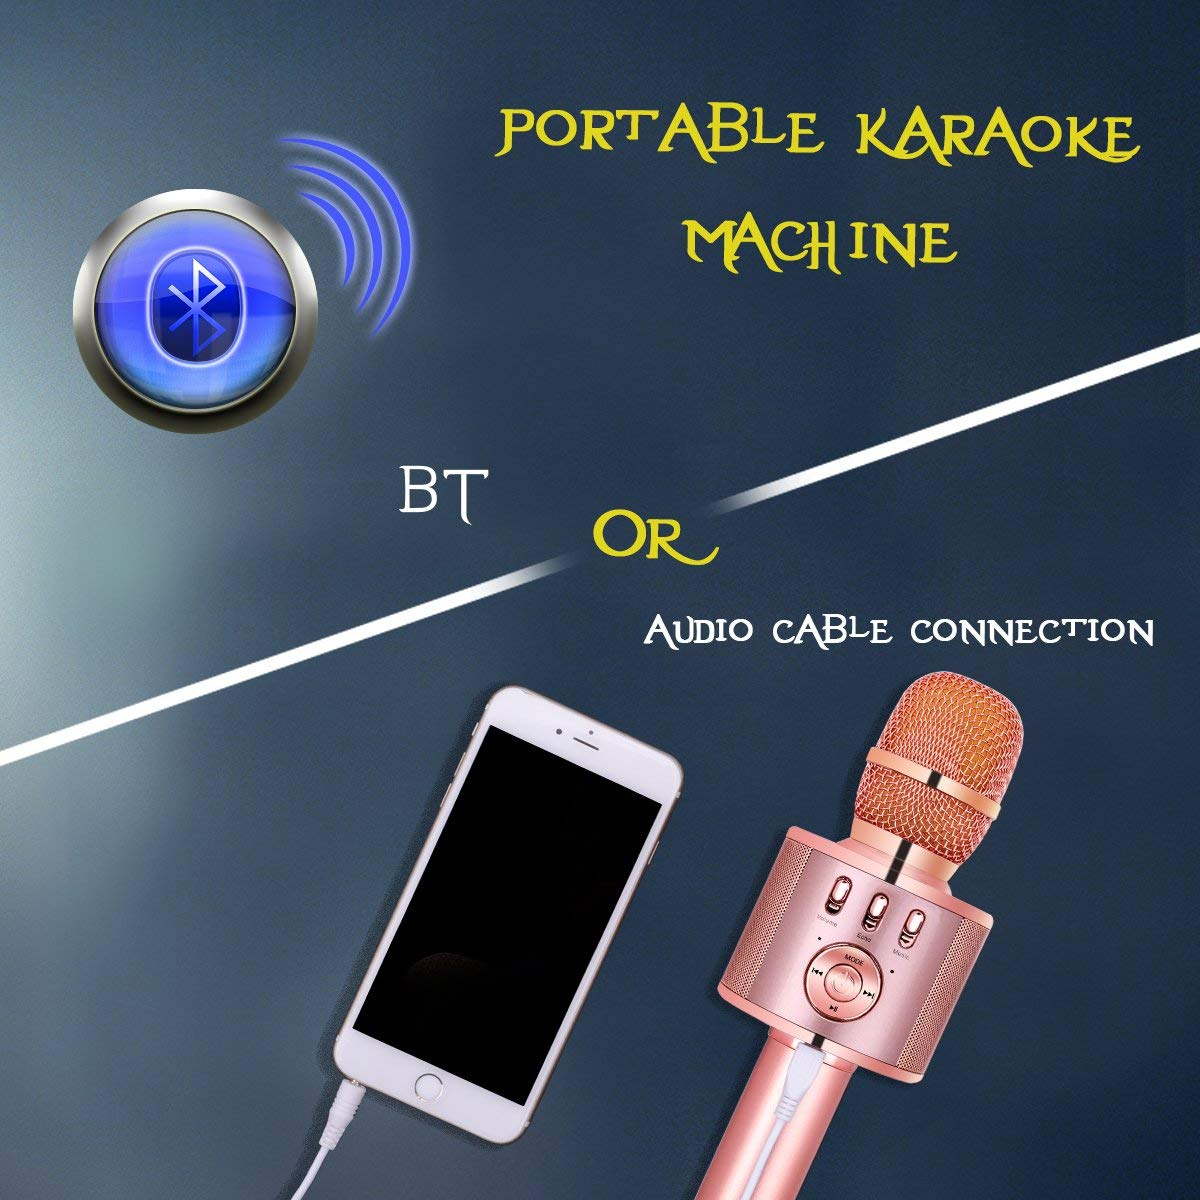 VERKB Wireless Karaoke Microphone Speaker Light Gold Rose Gold Portable Bluetooth Singing Machine for iPhone Android Smartphone Home Birthday Party Team Building